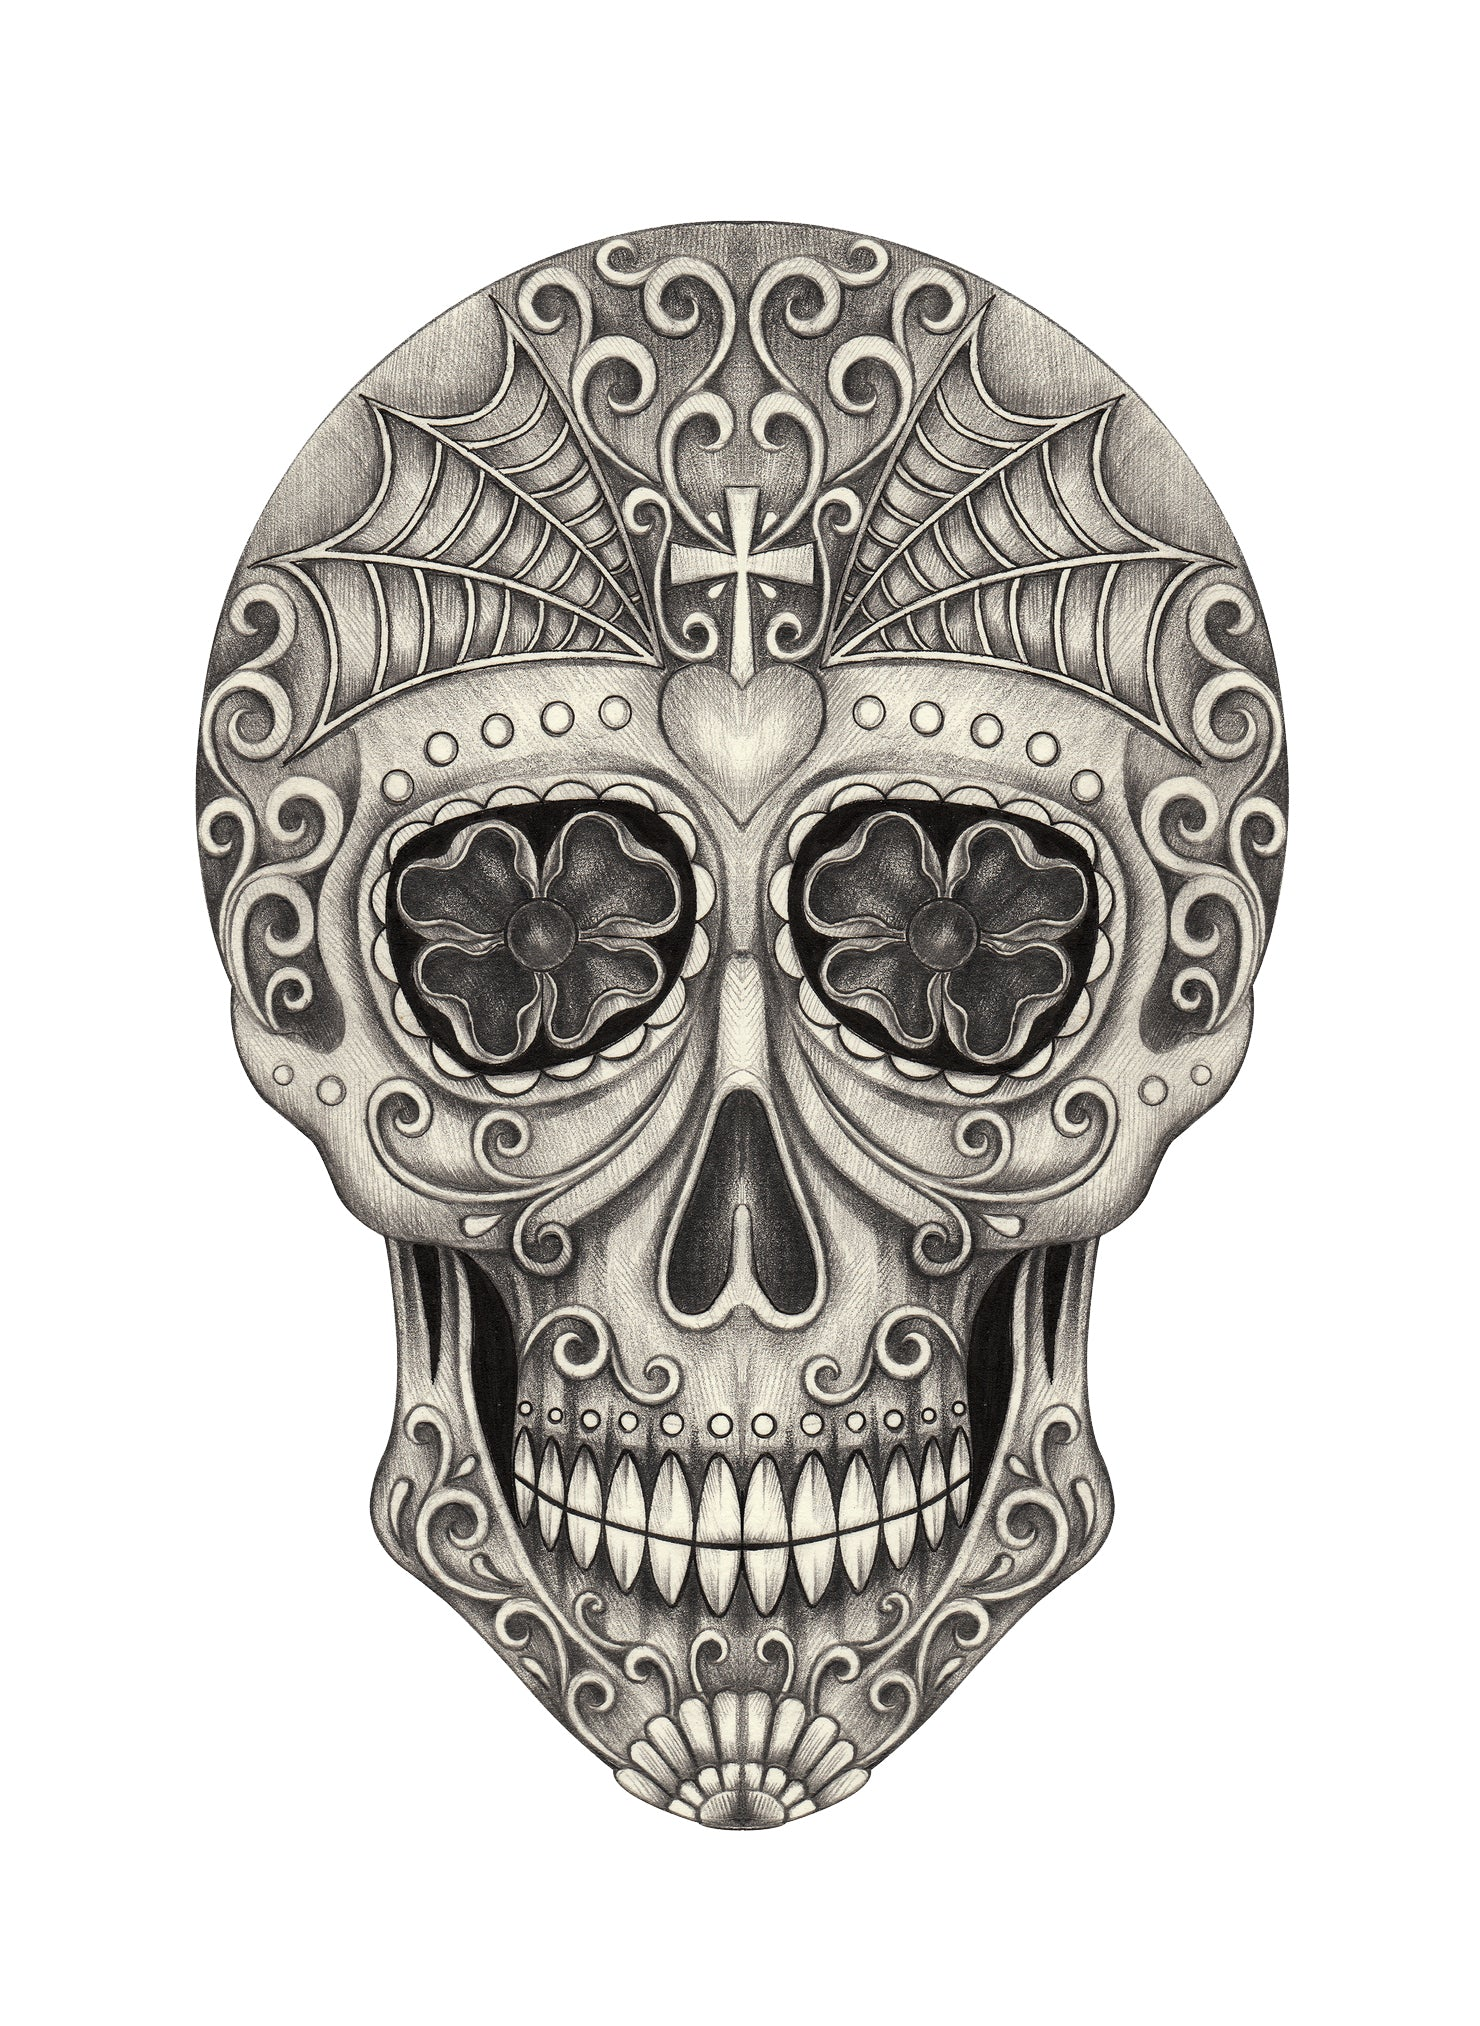 Pencil Sketch Floral Swirl Skull with Spider Web #2 Vinyl Decal Sticker